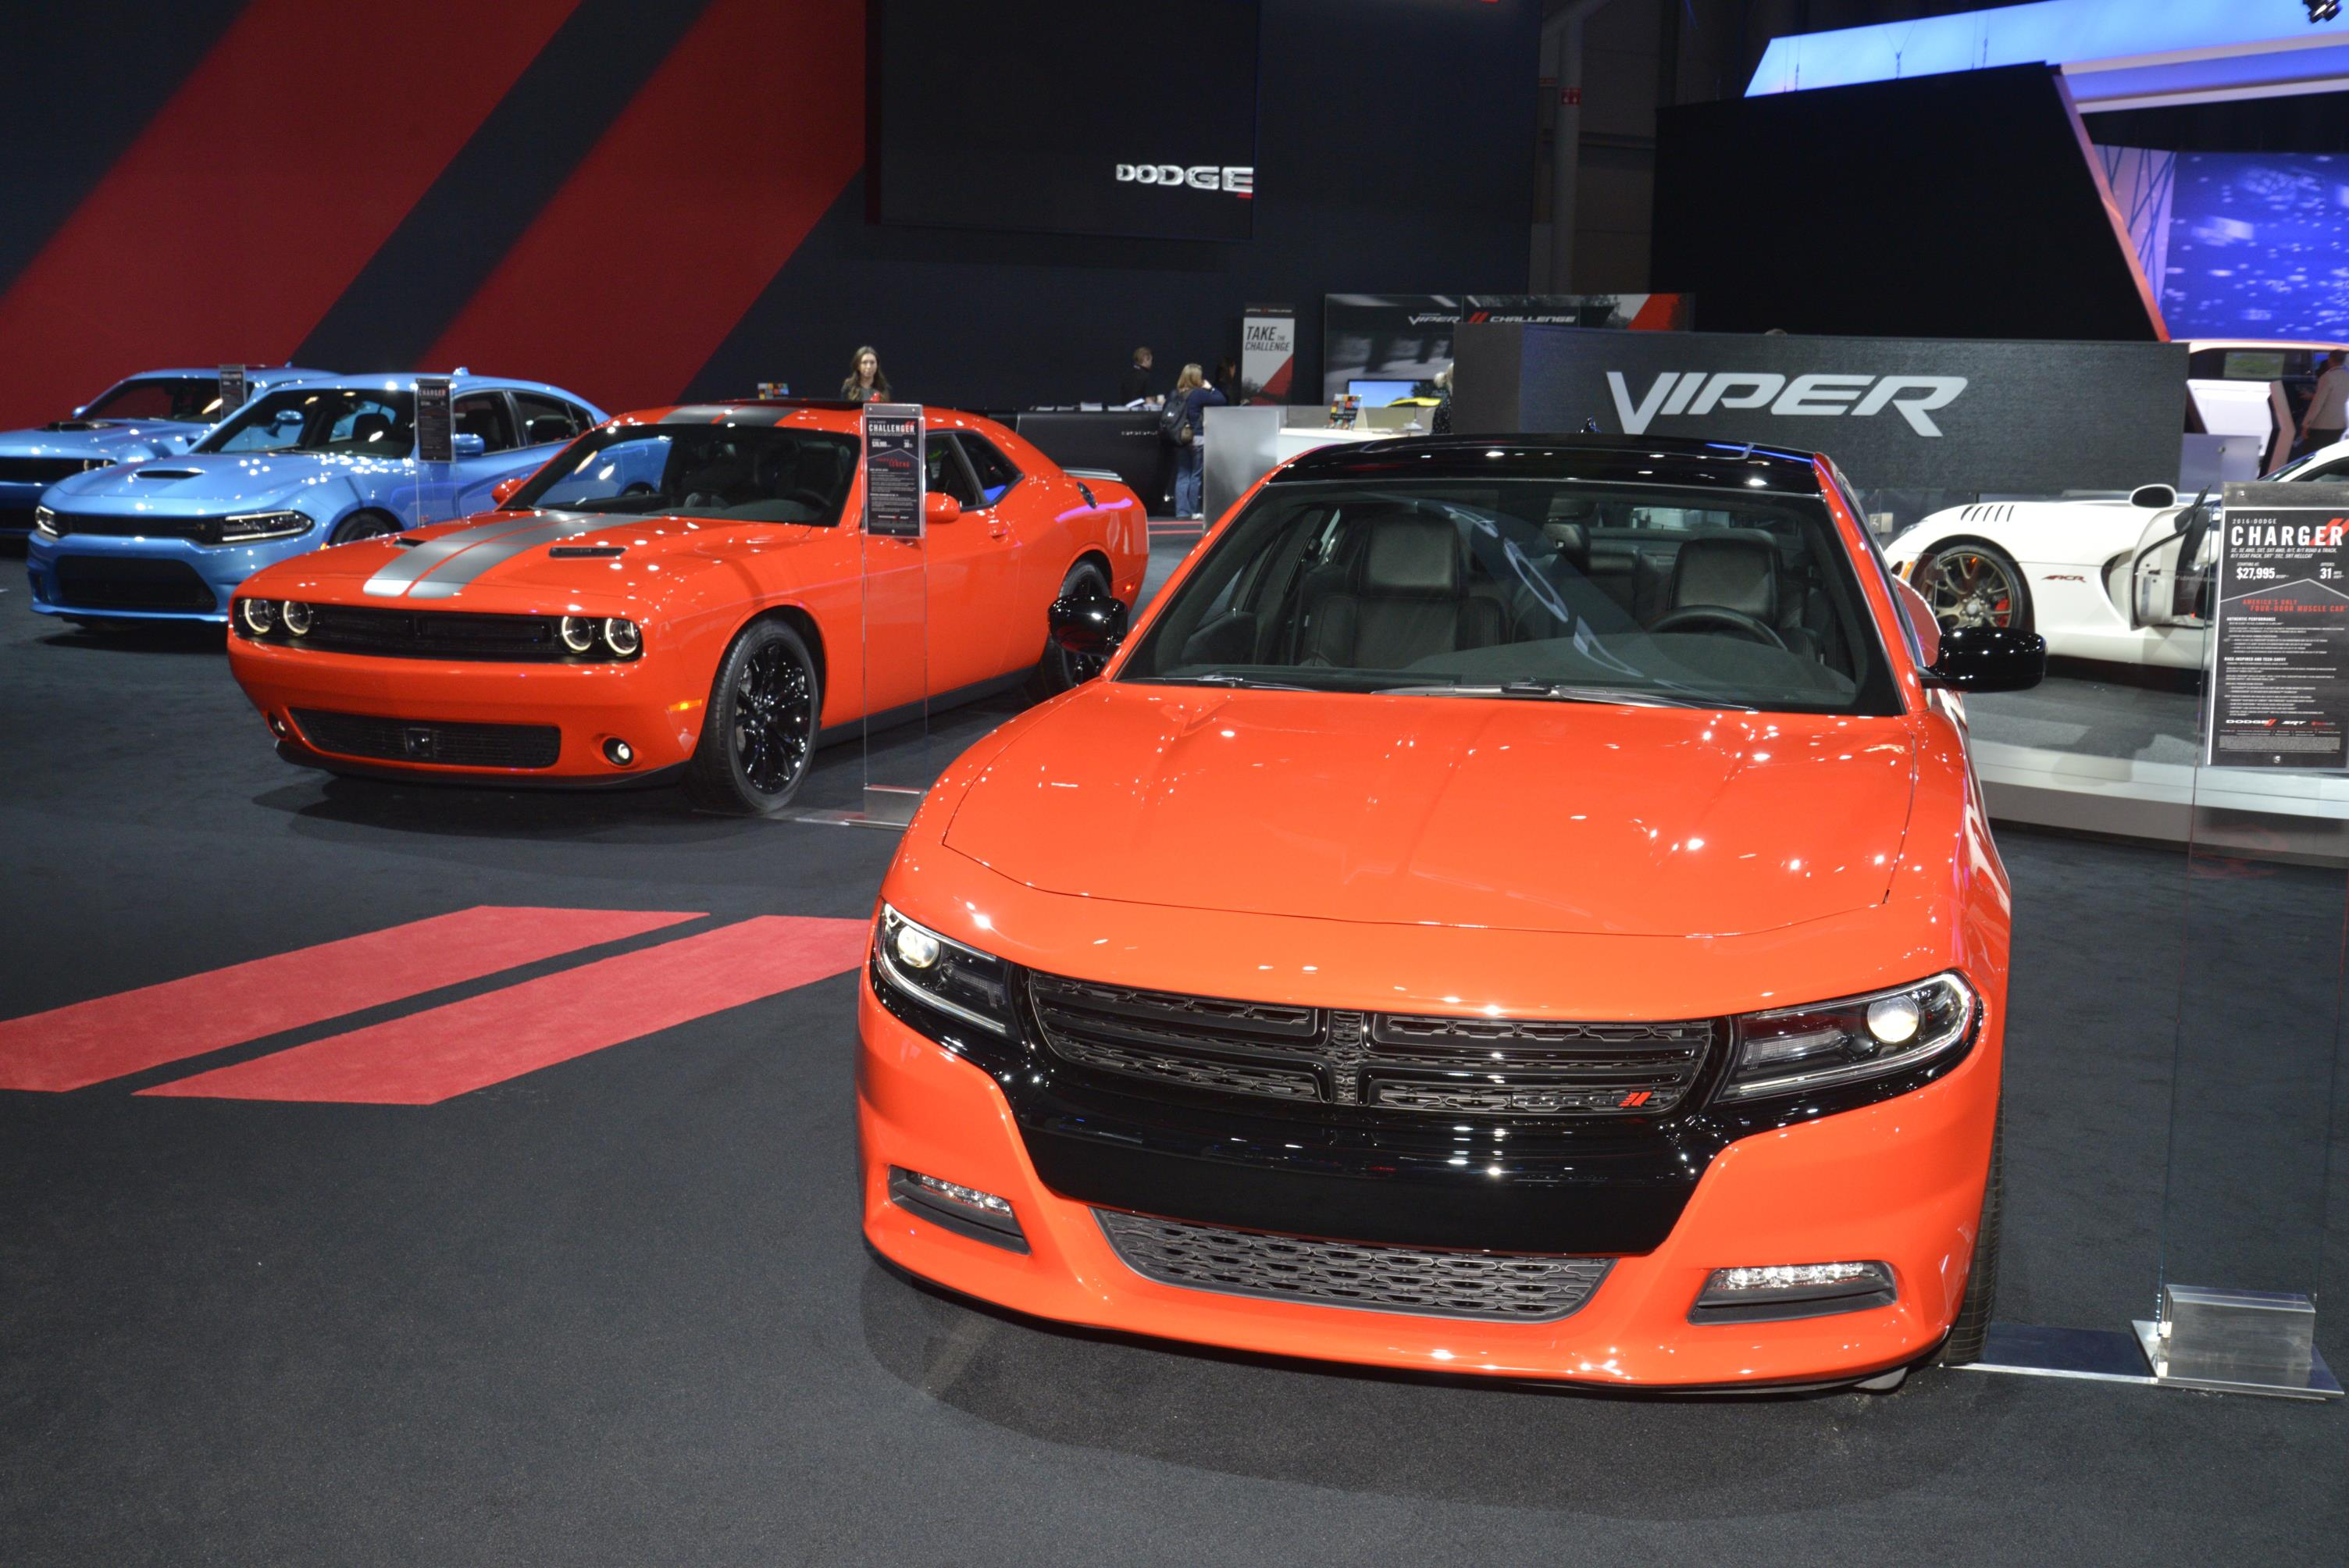 Srt Hellcat Charger >> Go Mango Paint Is Now on Regular 2016 Dodge Charger and Challenger - autoevolution